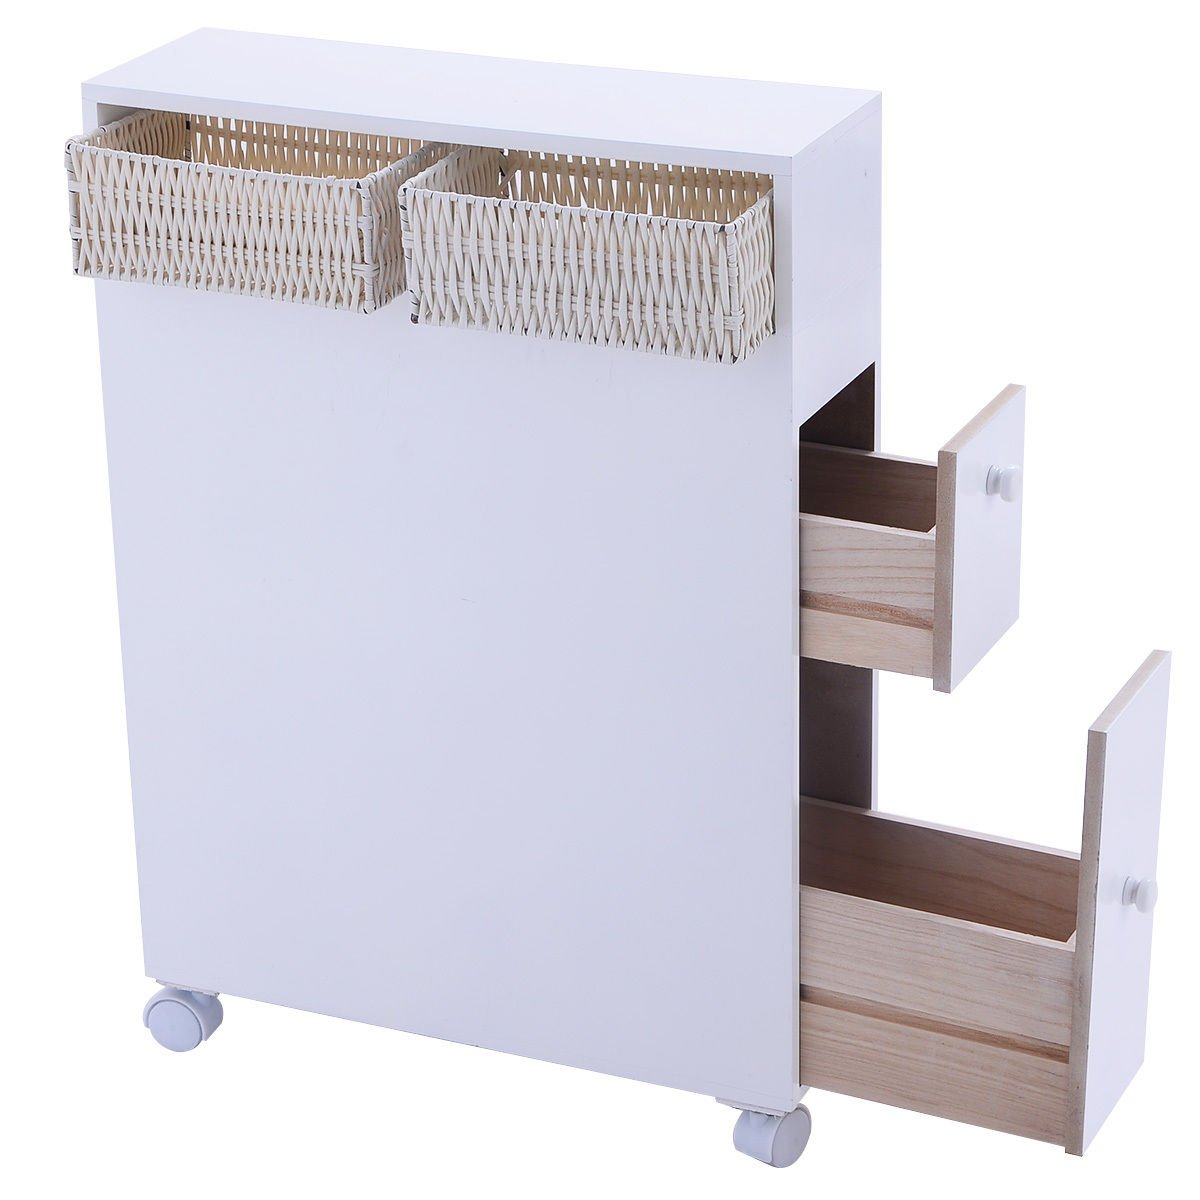 TANGKULA Bathroom Storage Wood Bathroom Rolling Floor Cabinet Wooden Floor Home Bath Toilet Organizer Floor Storage Cabinet with Drawers and Baskets, White (White)